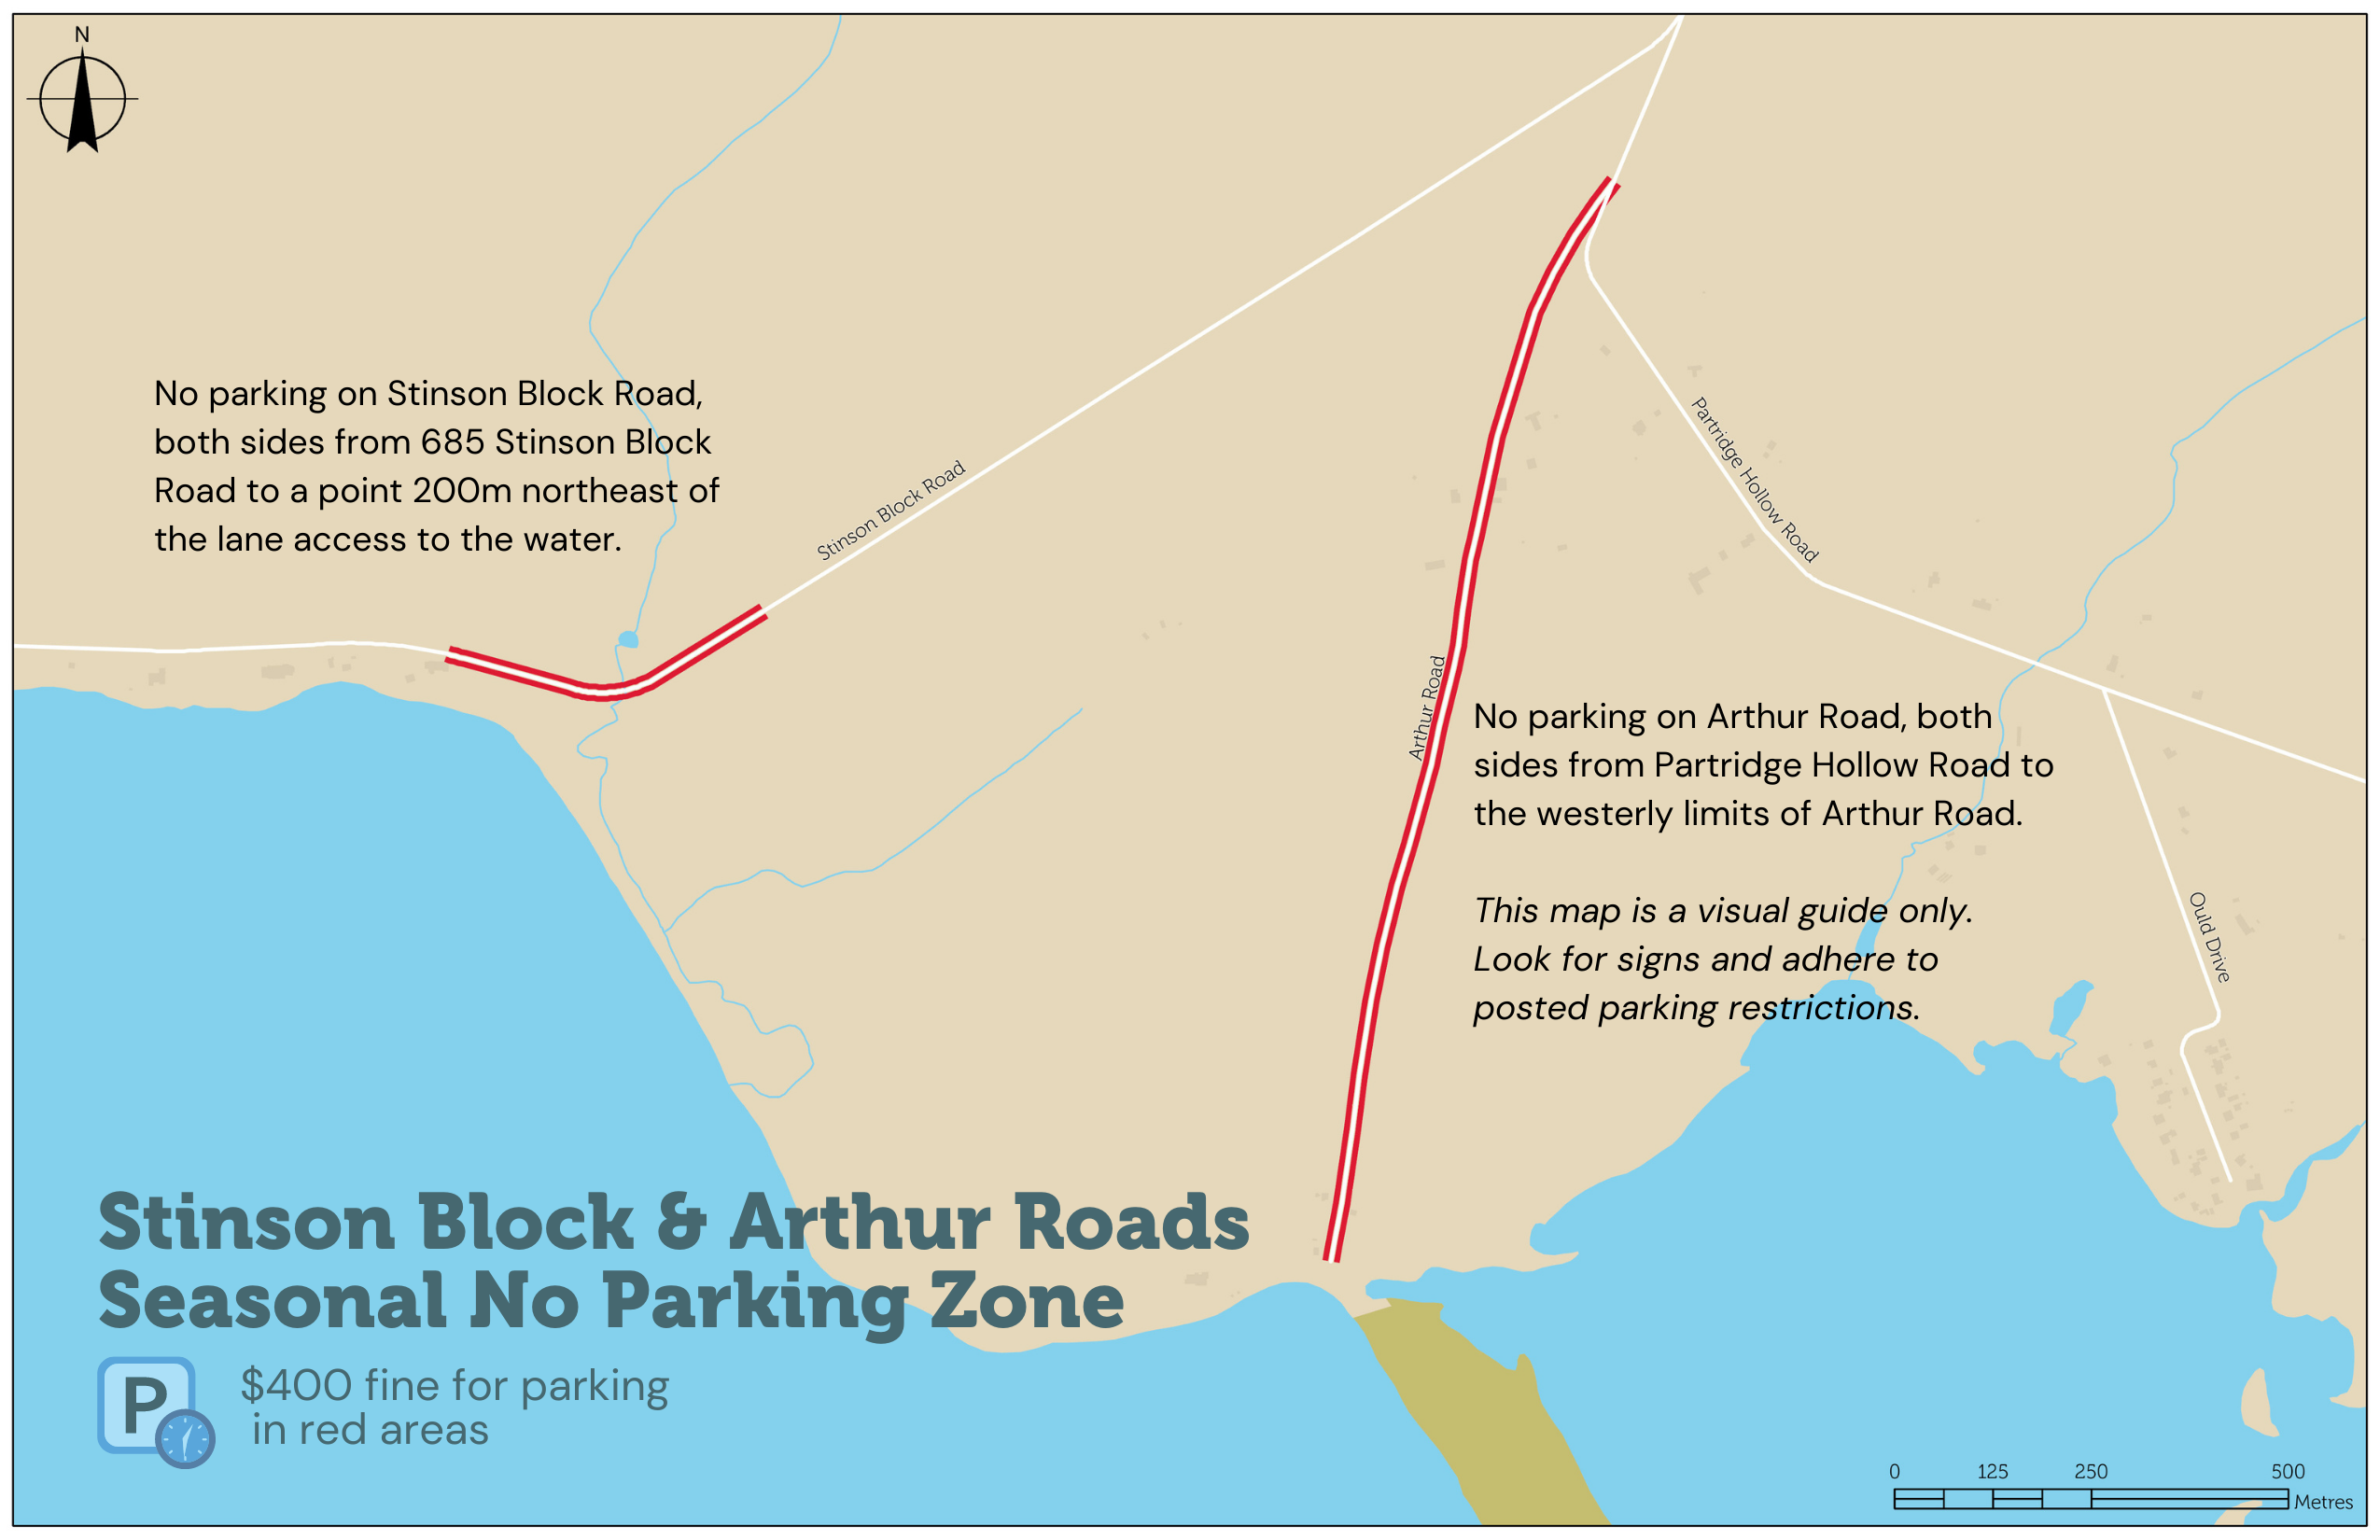 A map depicting seasonal no parking zones on Stinson Block and Arthur Roads in the Consecon area